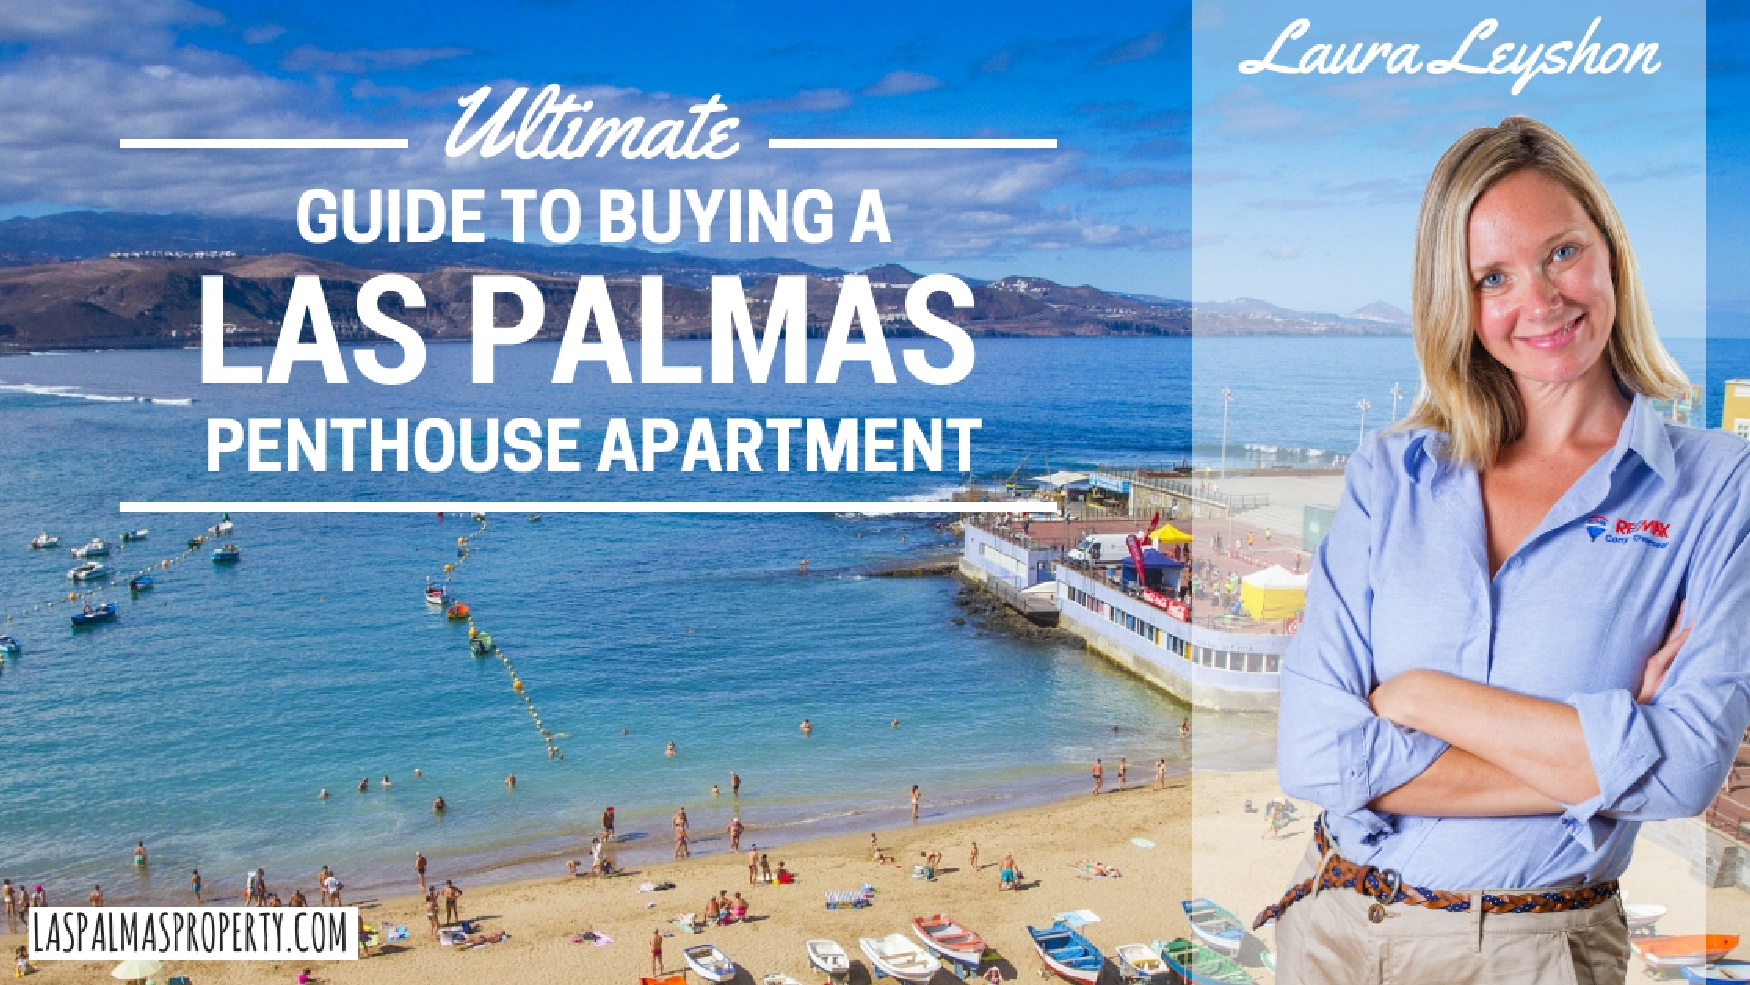 The Ultimate Guide To Buying A Las Palmas Penthouse Apartment